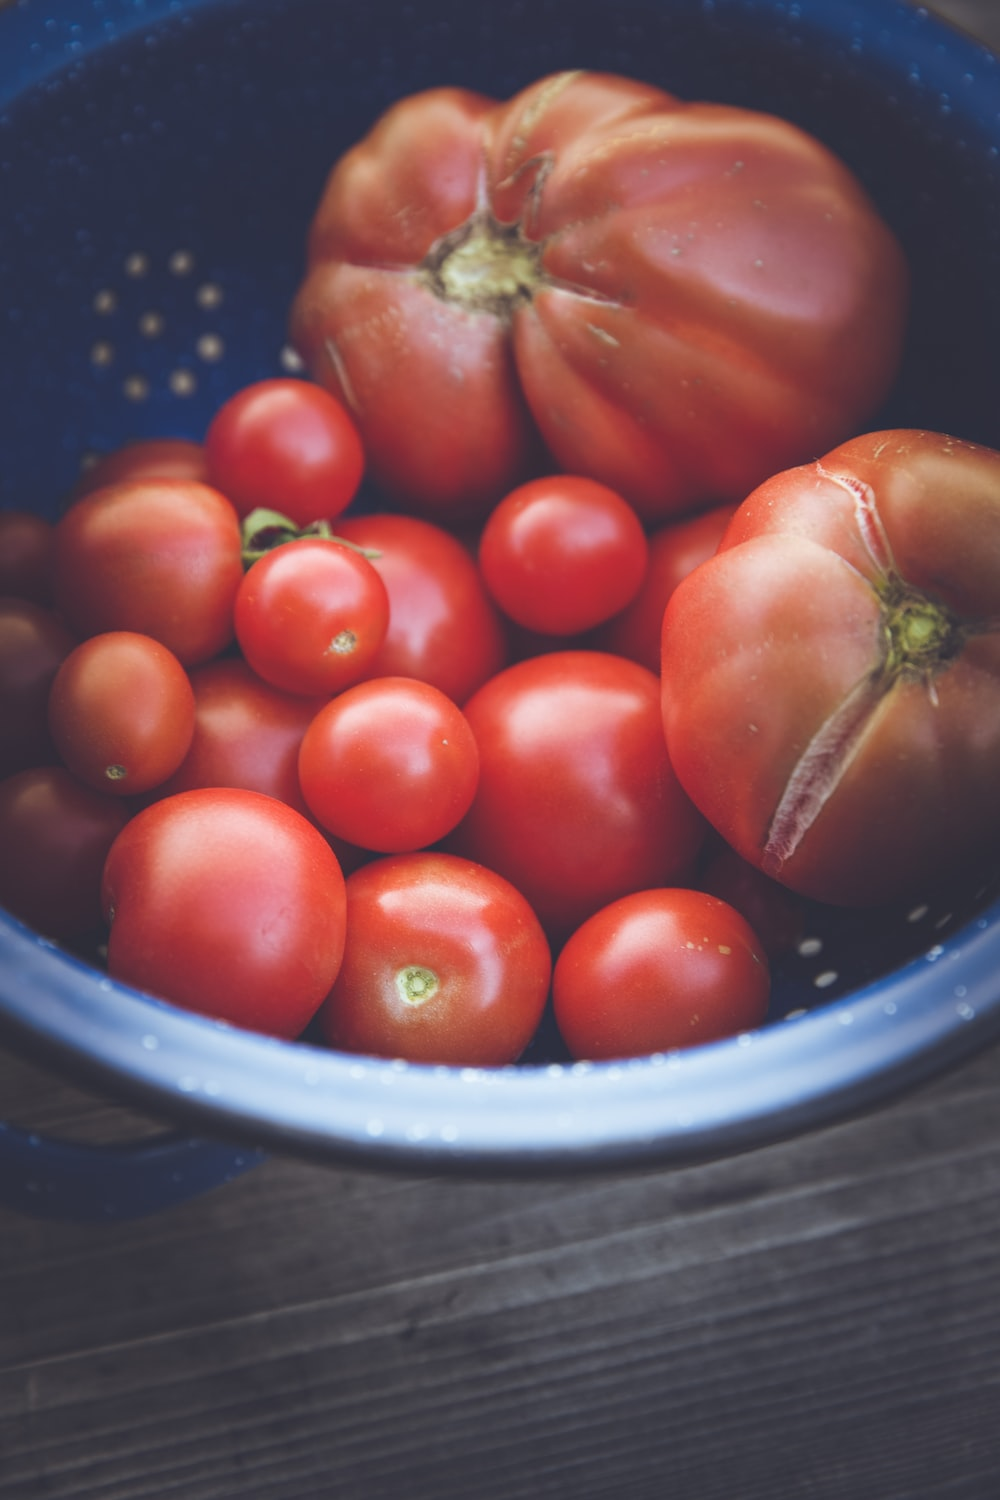 red tomatoes on blue plastic bowl